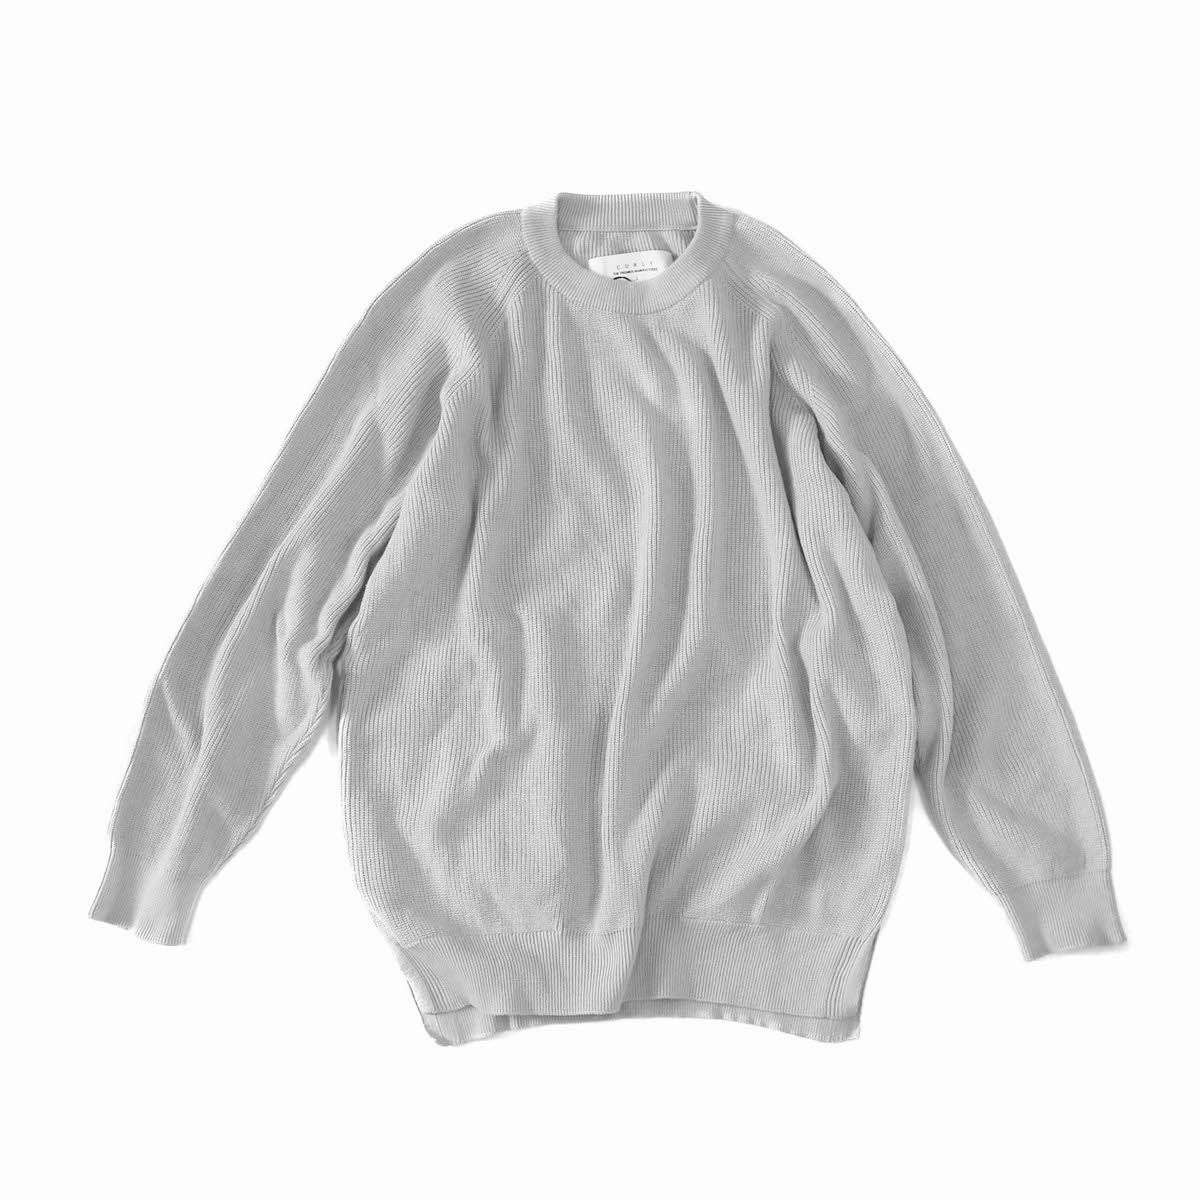 CURLY / ASSEMBLY CREW KNIT -LT.GRAY